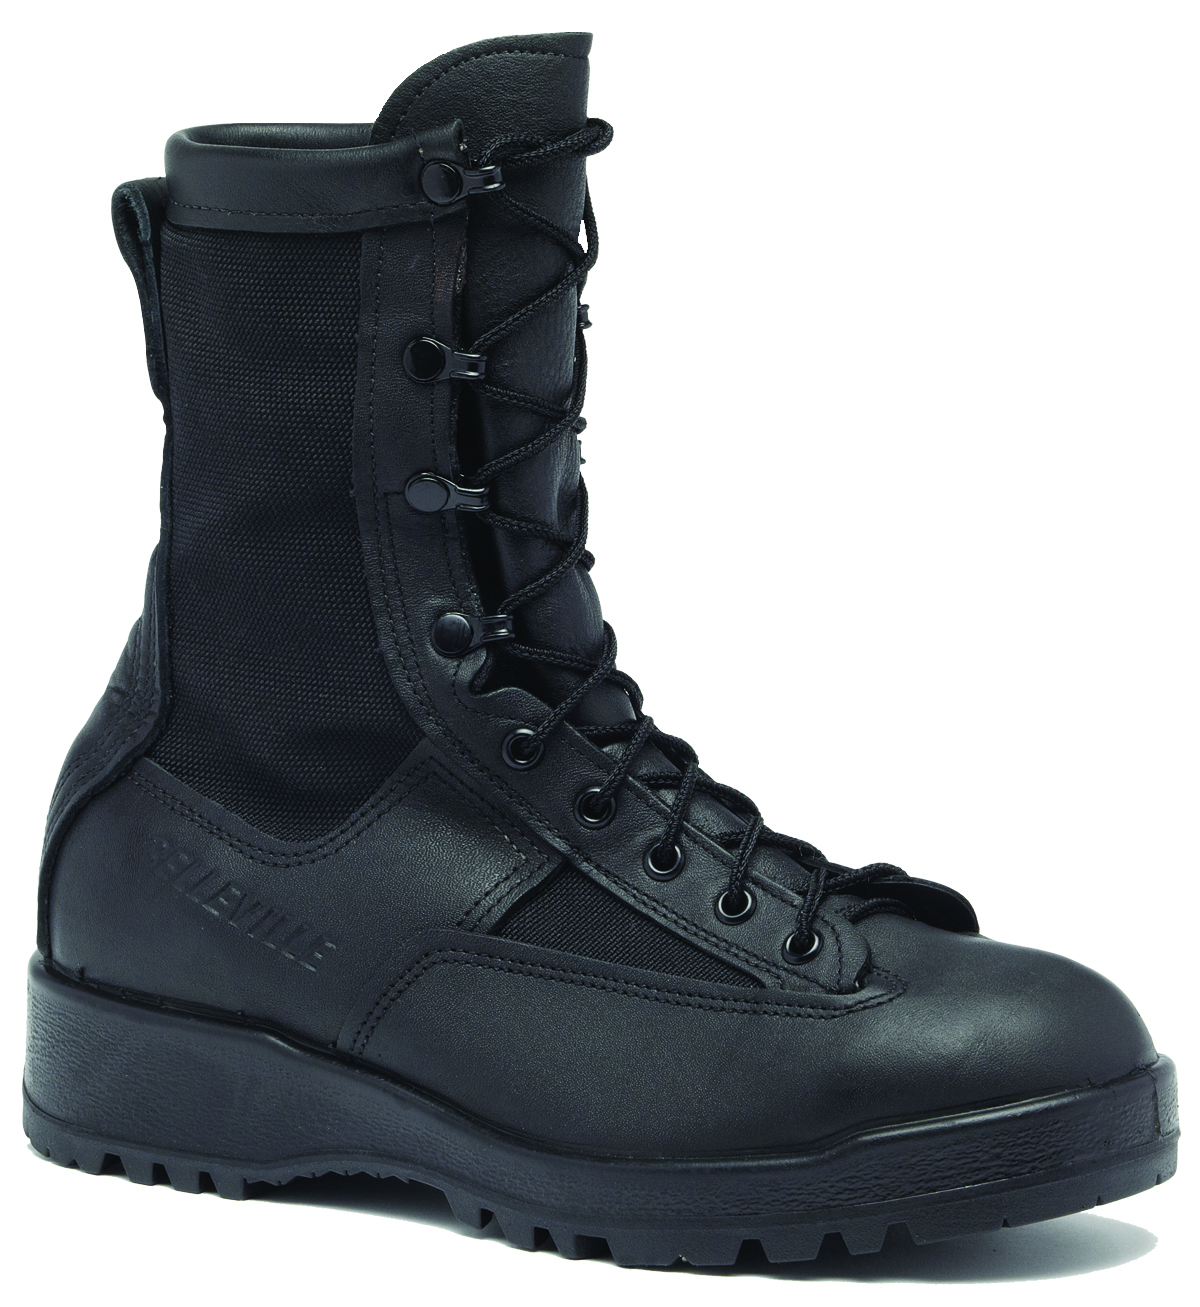 Steel Composite Toe Military Boots - Free Size Exchanges